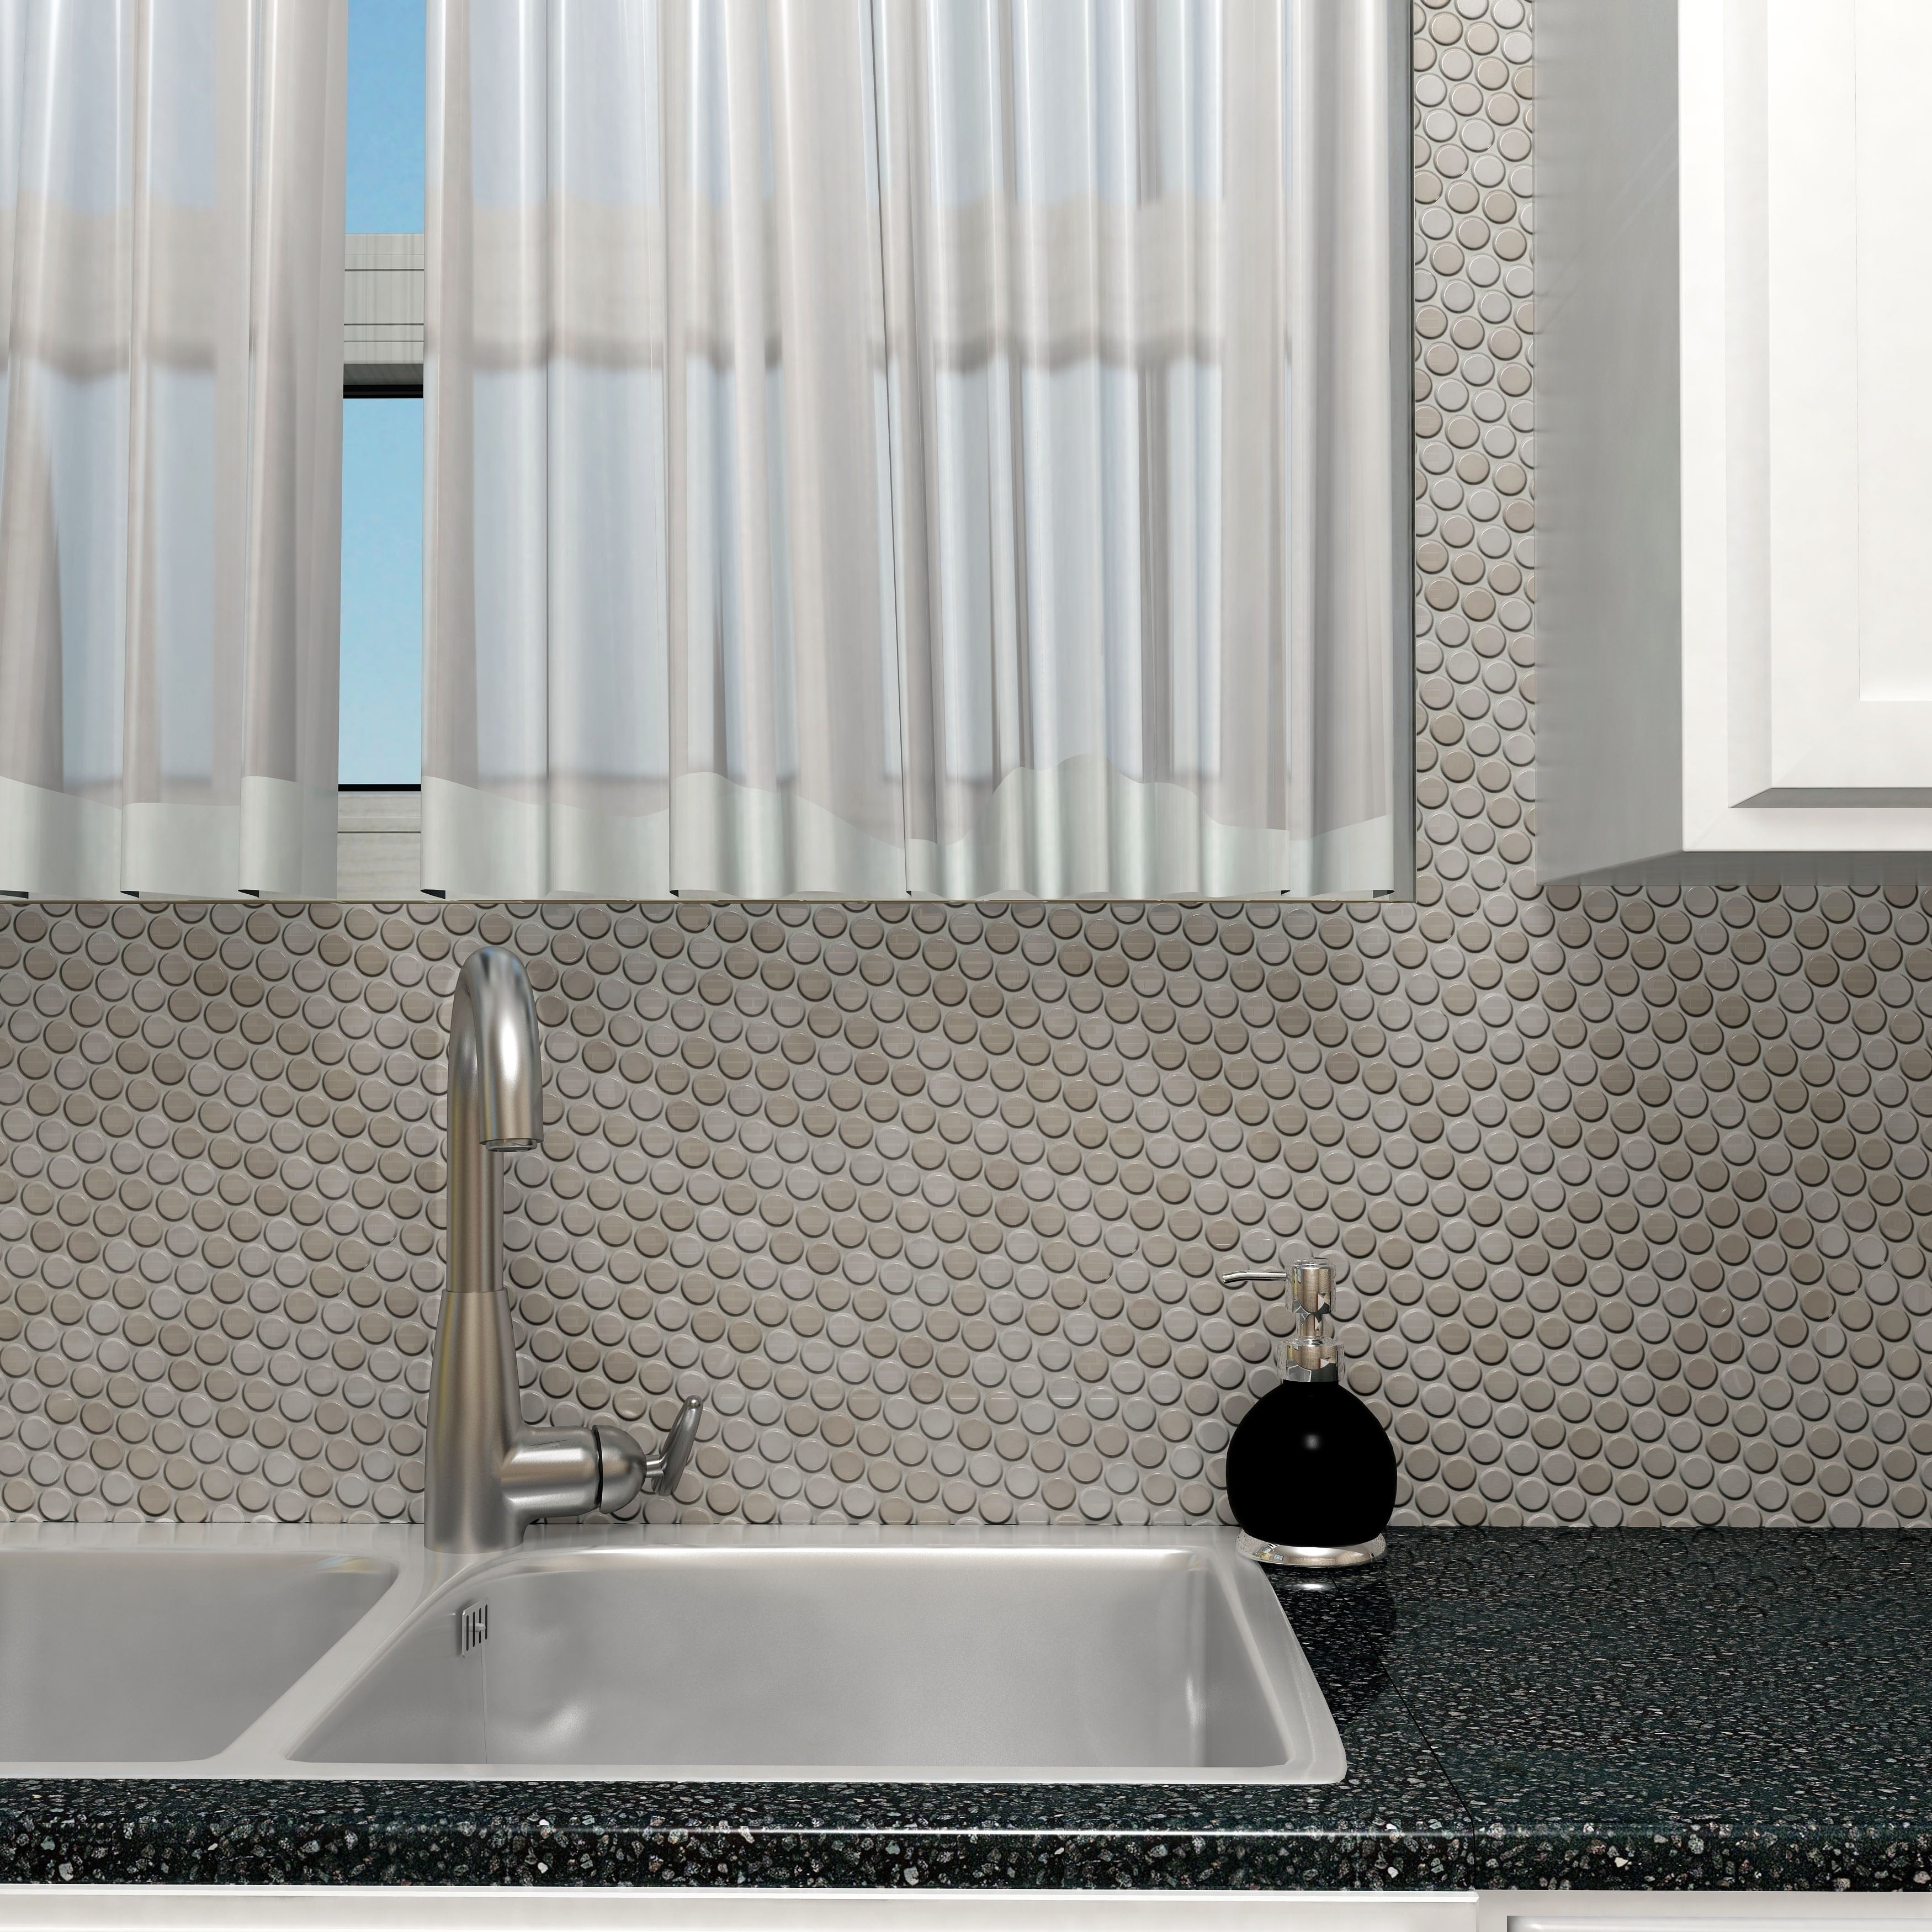 SomerTile 11.75 x 11.75-inch Penny Stainless Steel Over Porcelain Mosaic  Wall Tile (Case of 10) - Free Shipping Today - Overstock.com - 15257151